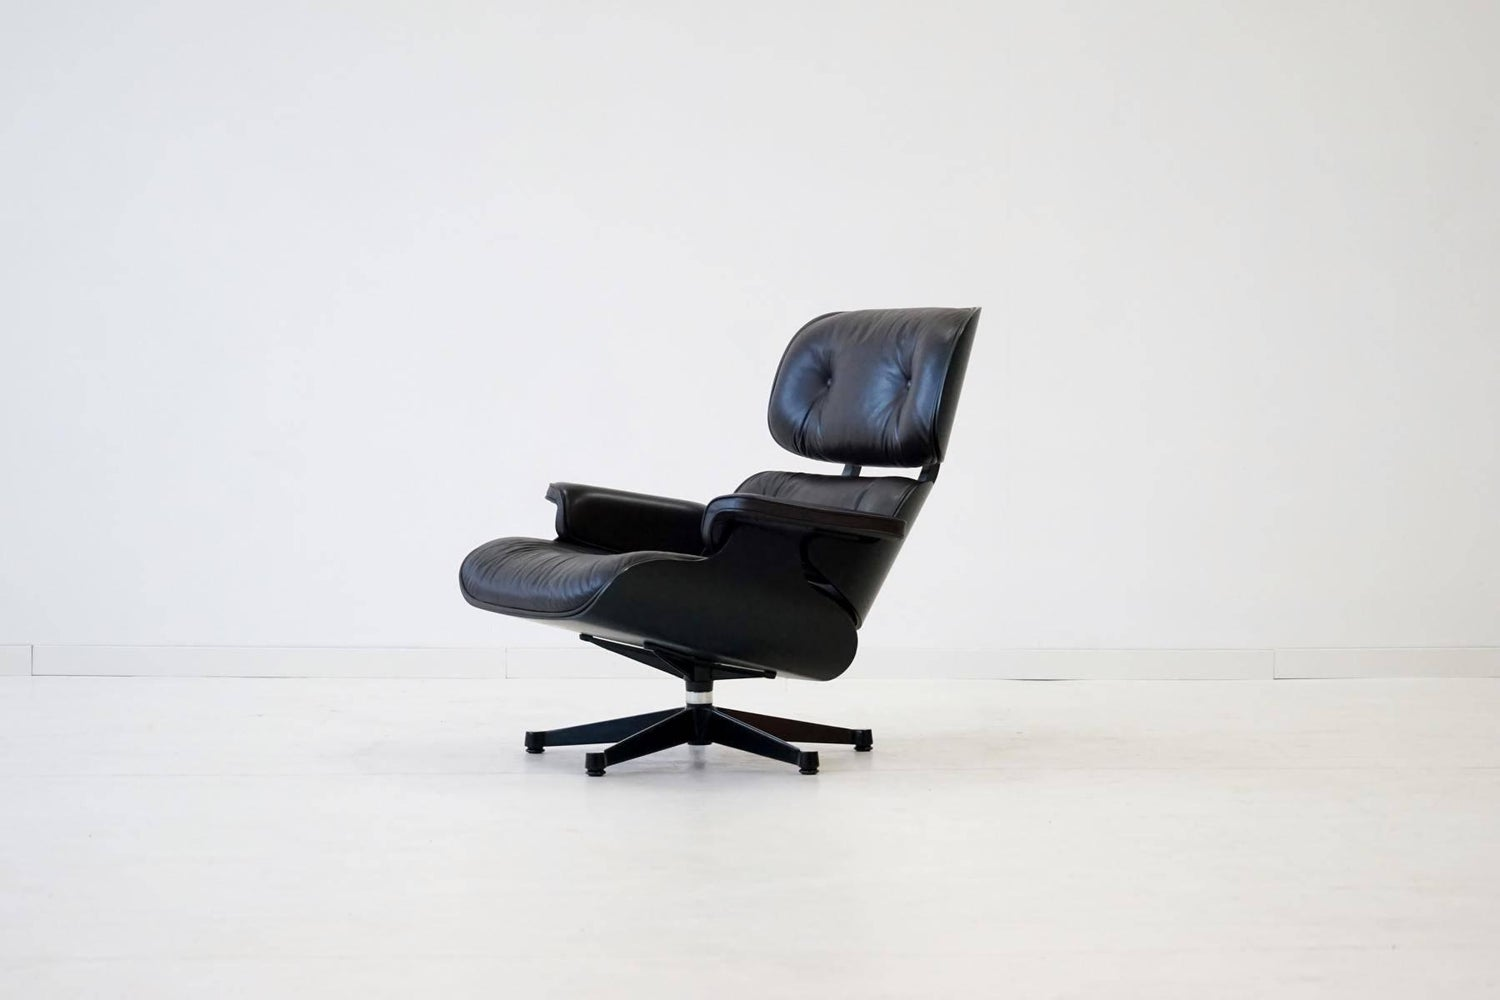 Charles Eames Sessel original lounge chair by charles eames vitra from exhibition for